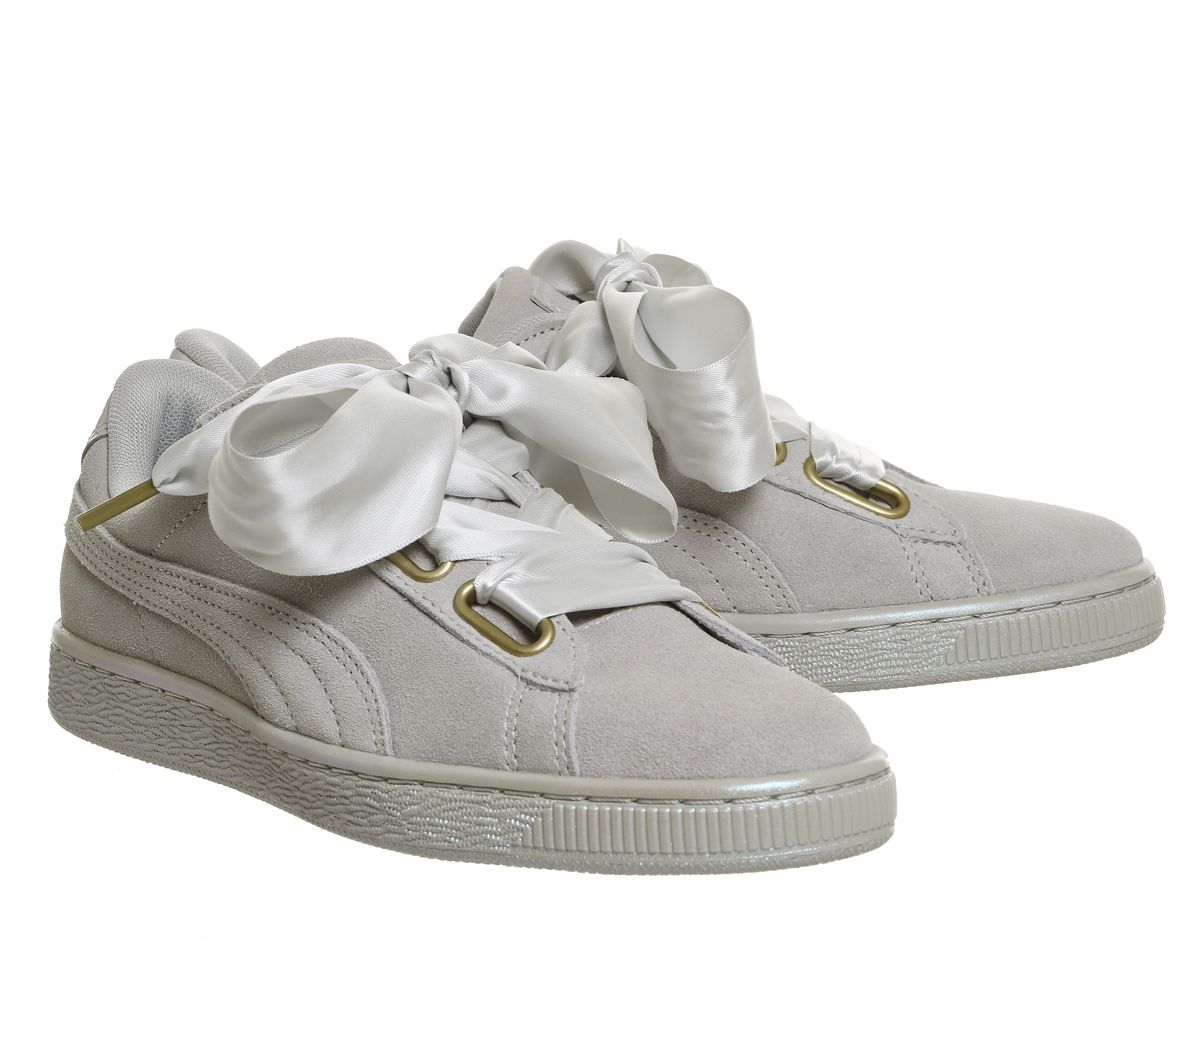 c24ed92070f4f9 Sentinel Womens Puma Suede Heart Grey Violet Satin Trainers Shoes